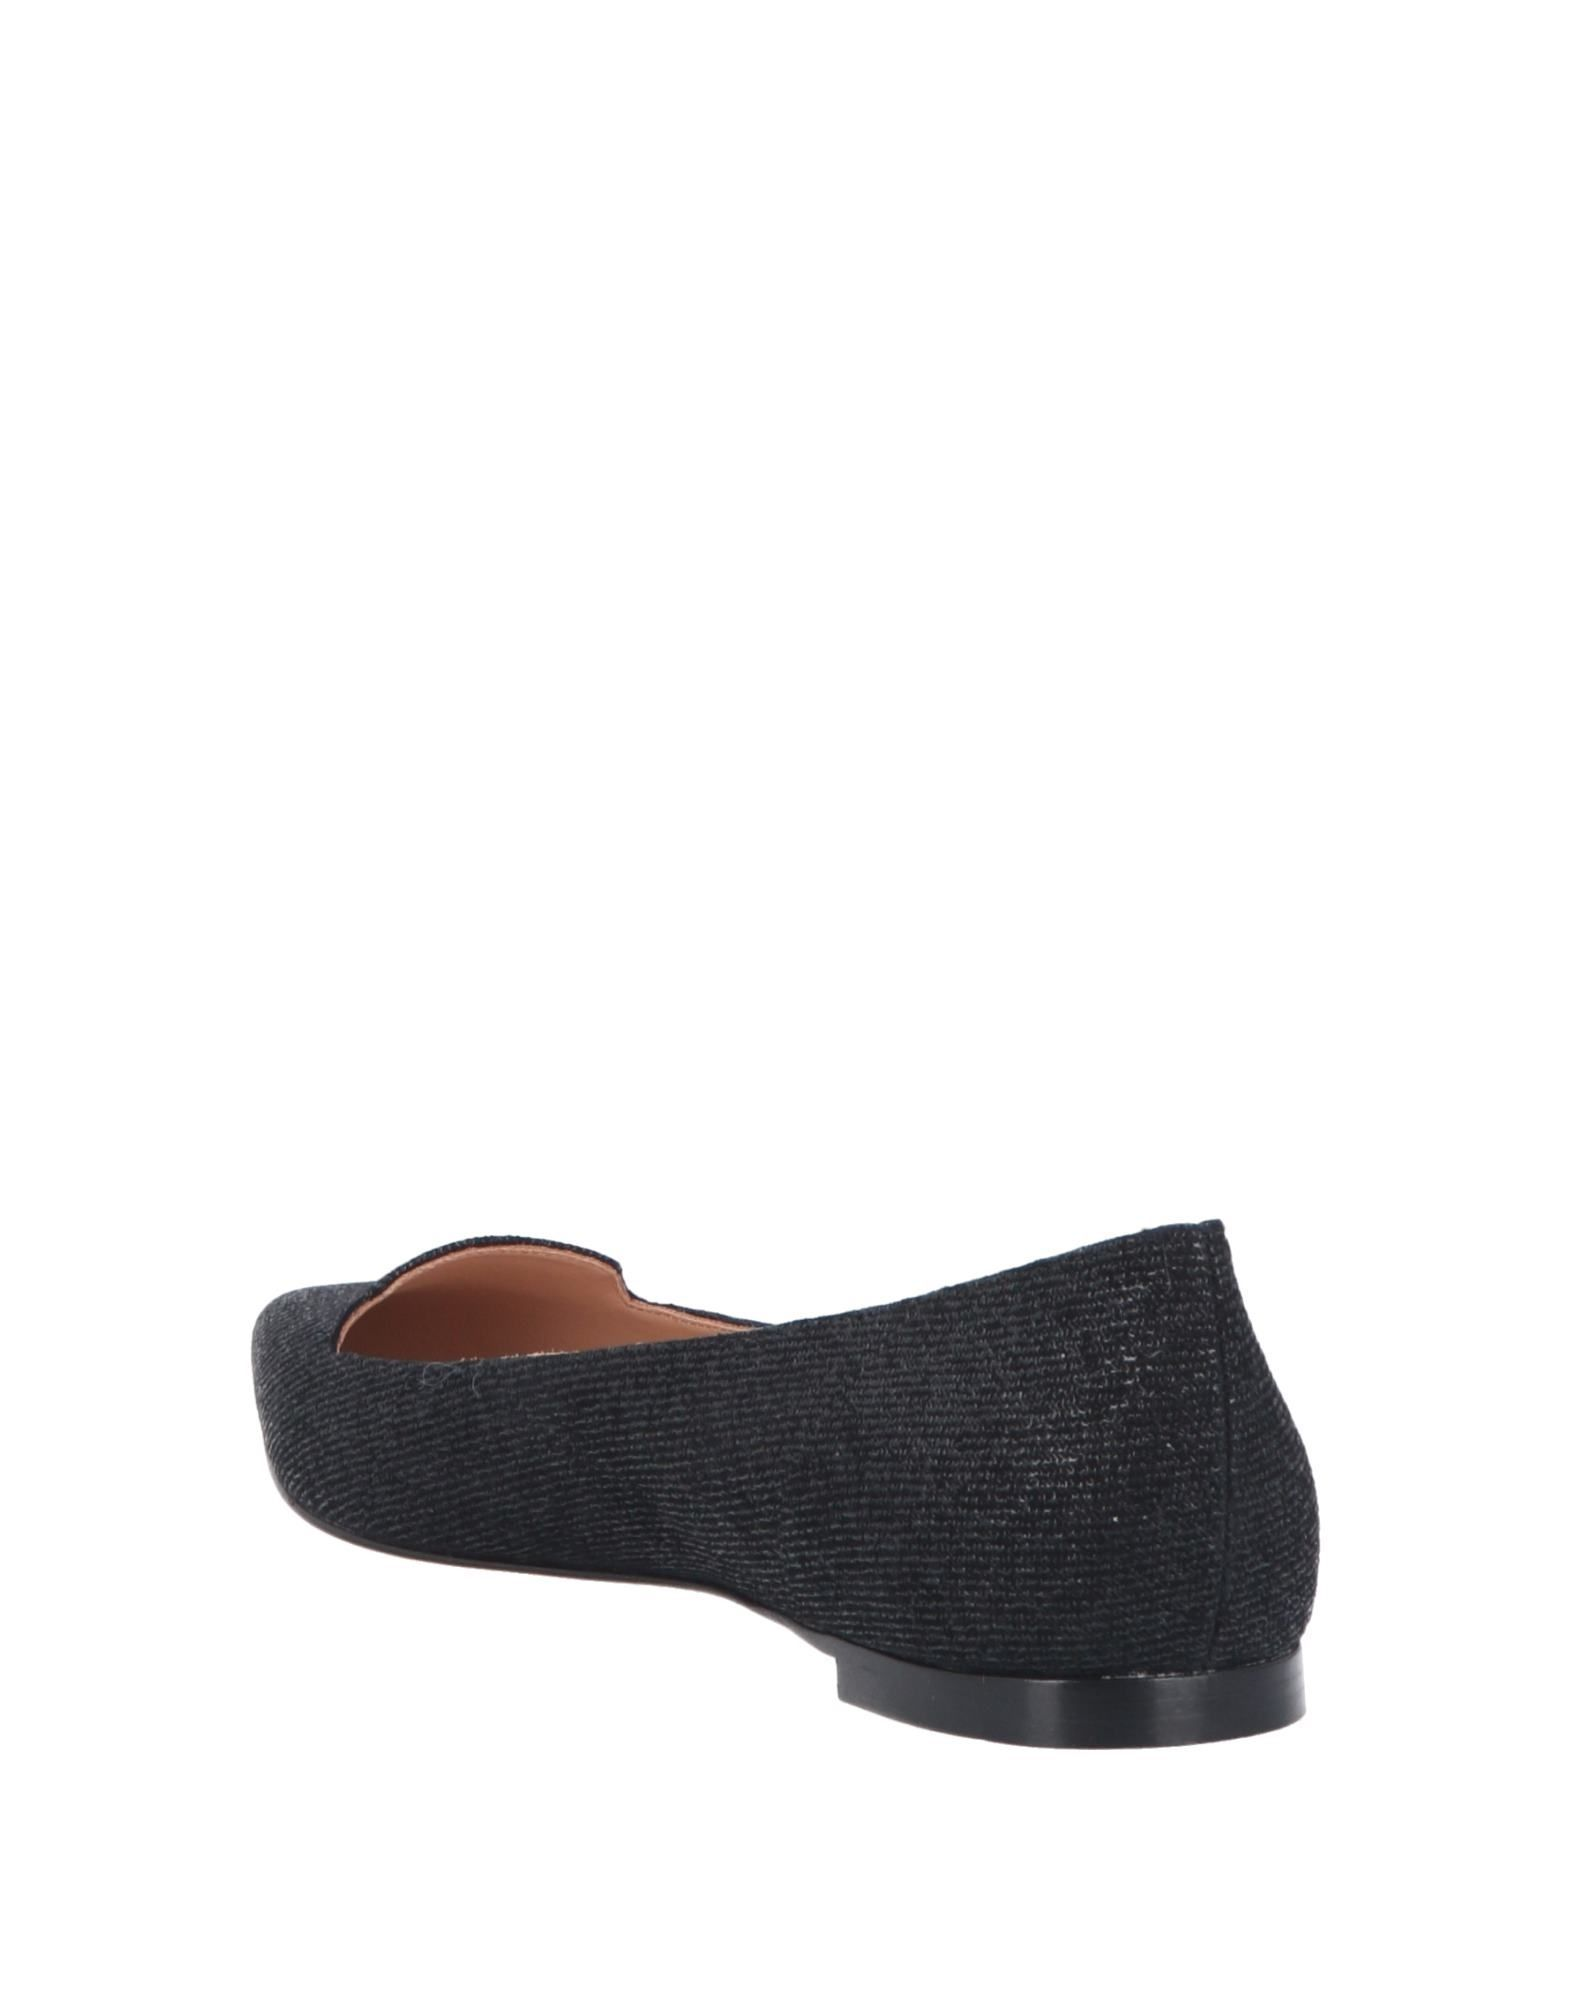 Sergio Rossi Black Leather Ballet Flats